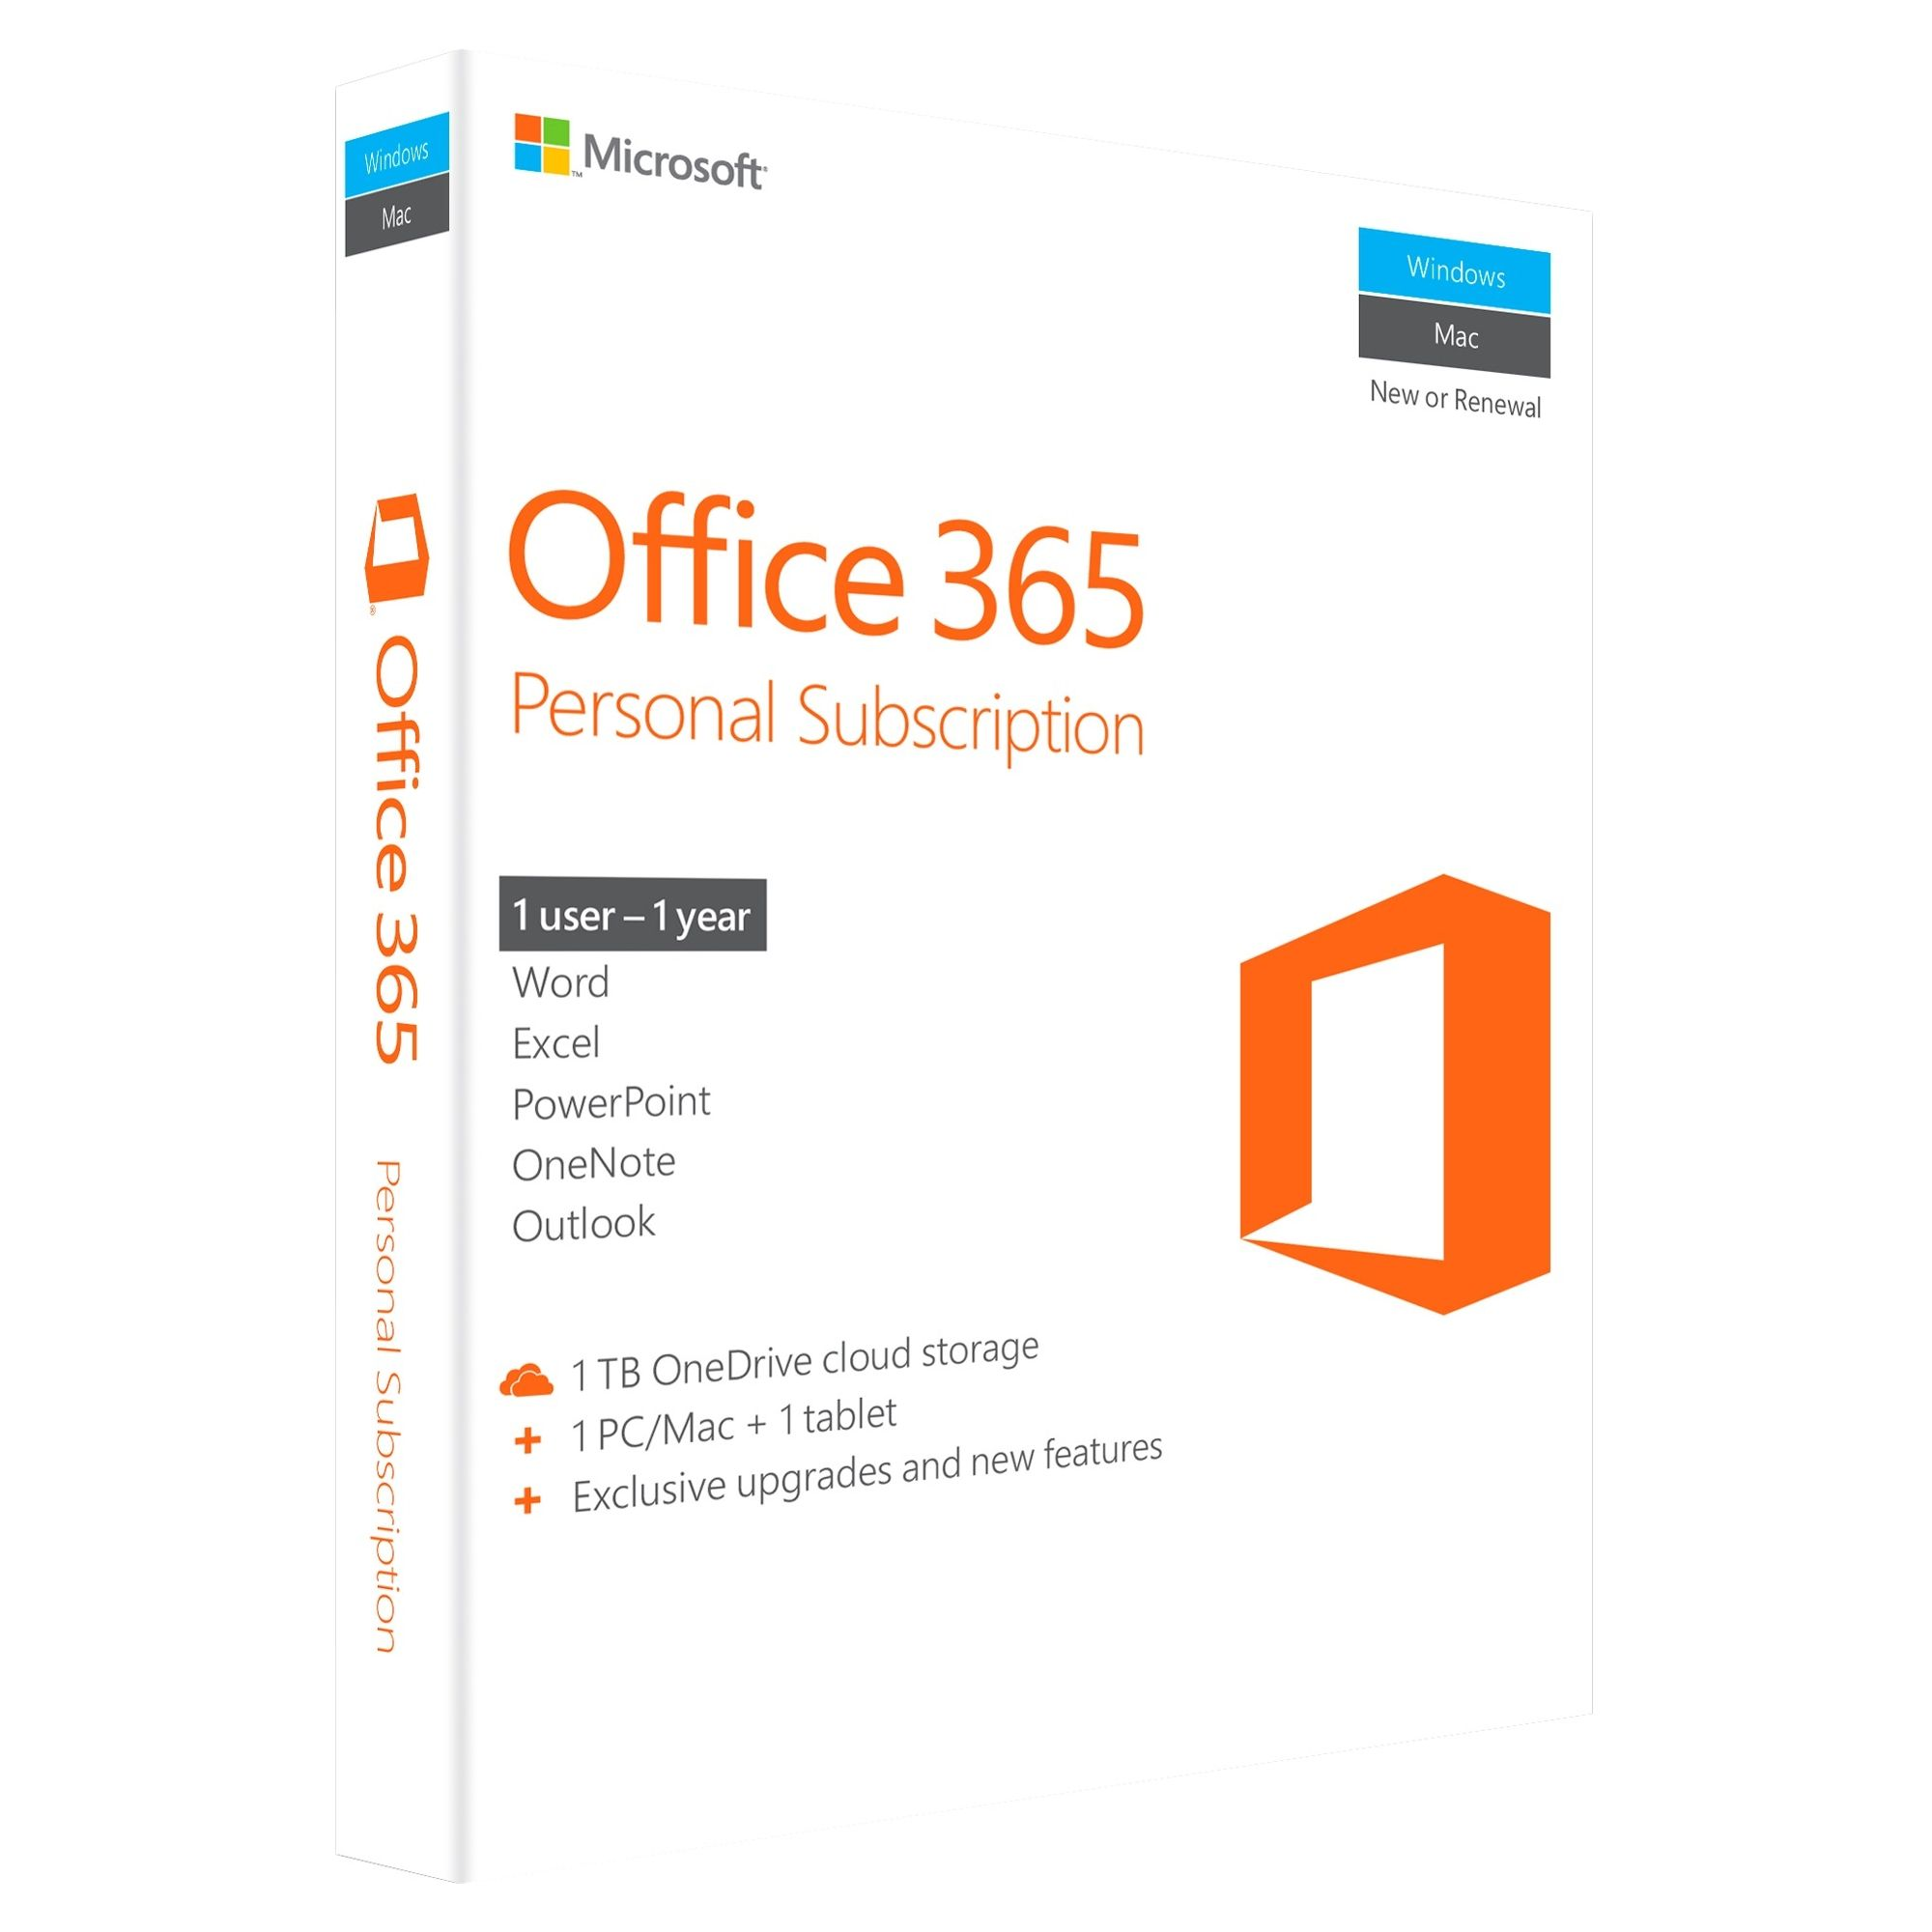 Microsoft Office 365 Personal Subscription Exclusive Upgrades And New Features 1 Tb Onedrive Cloud Storage 1 Tablet 1 Pc Microsoft Office Office 365 Personal Office 365